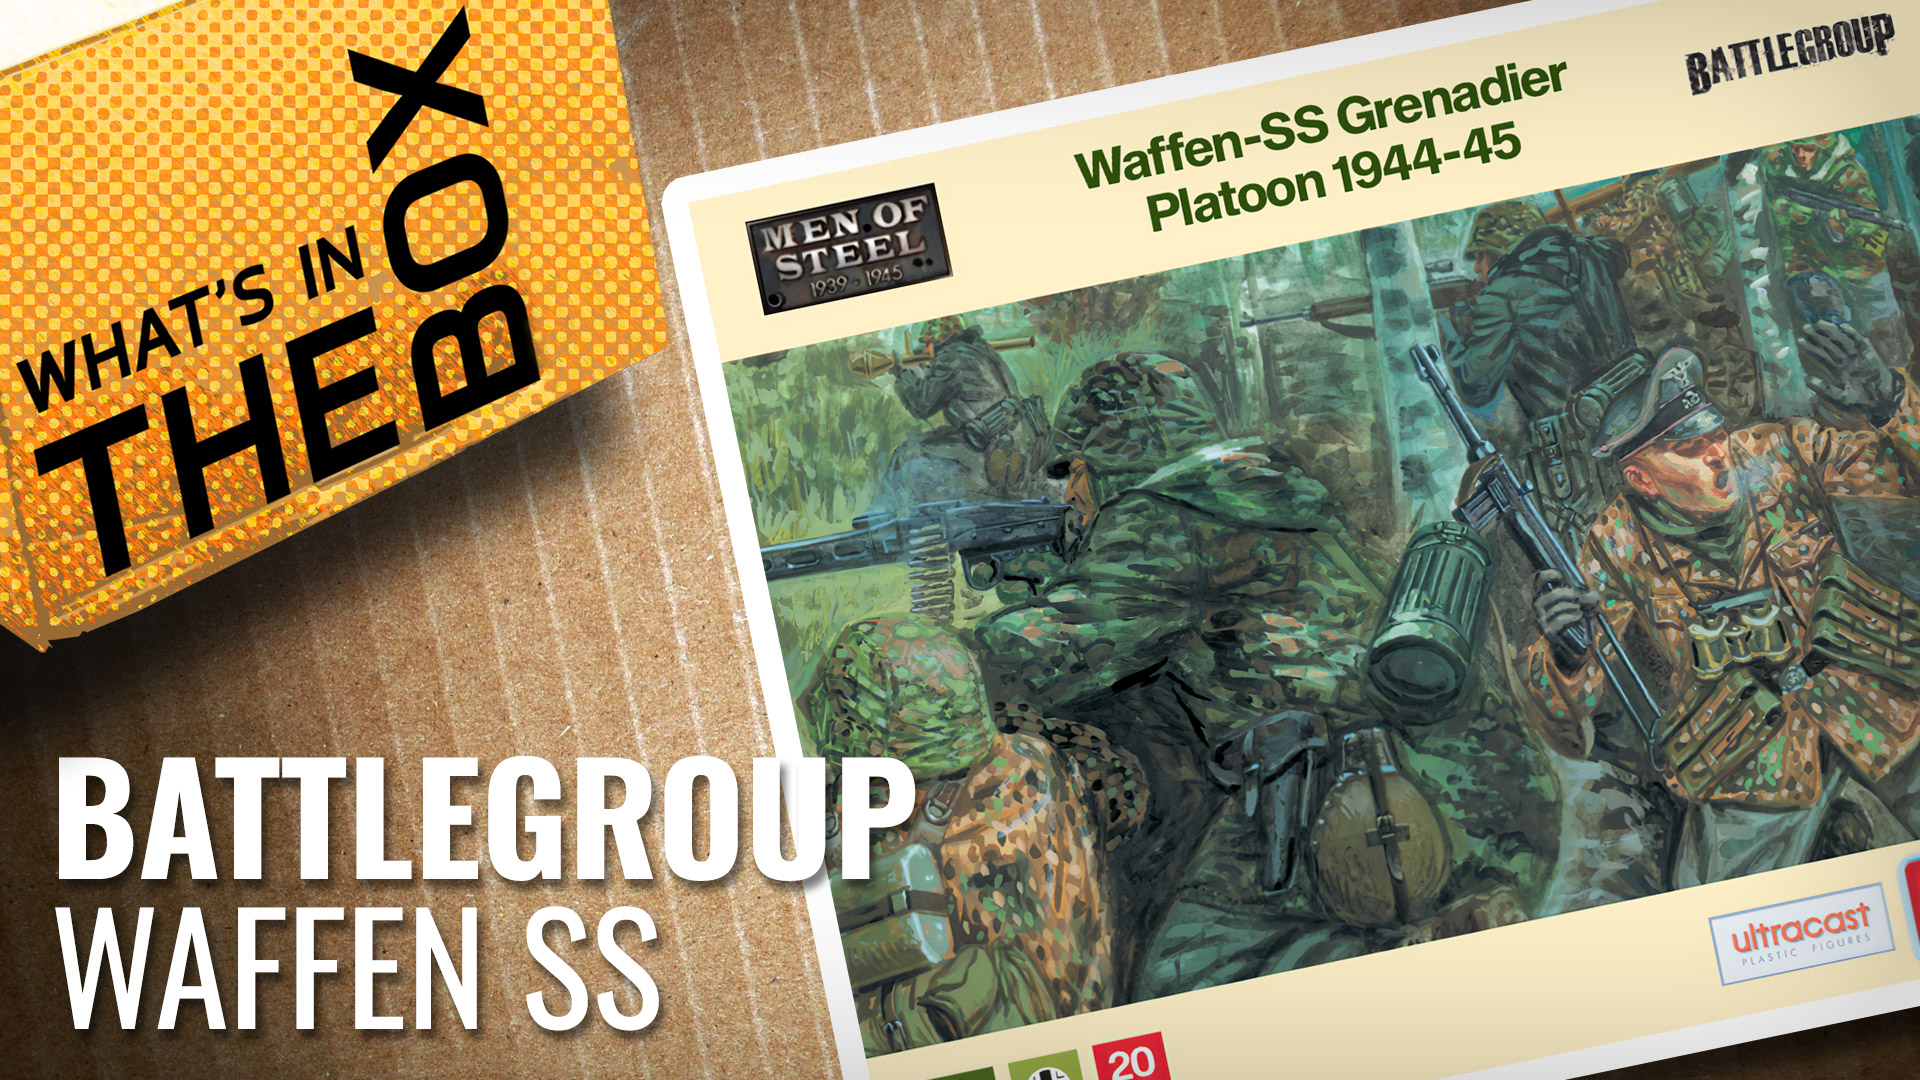 PSC_Waffen-SS-coverimage